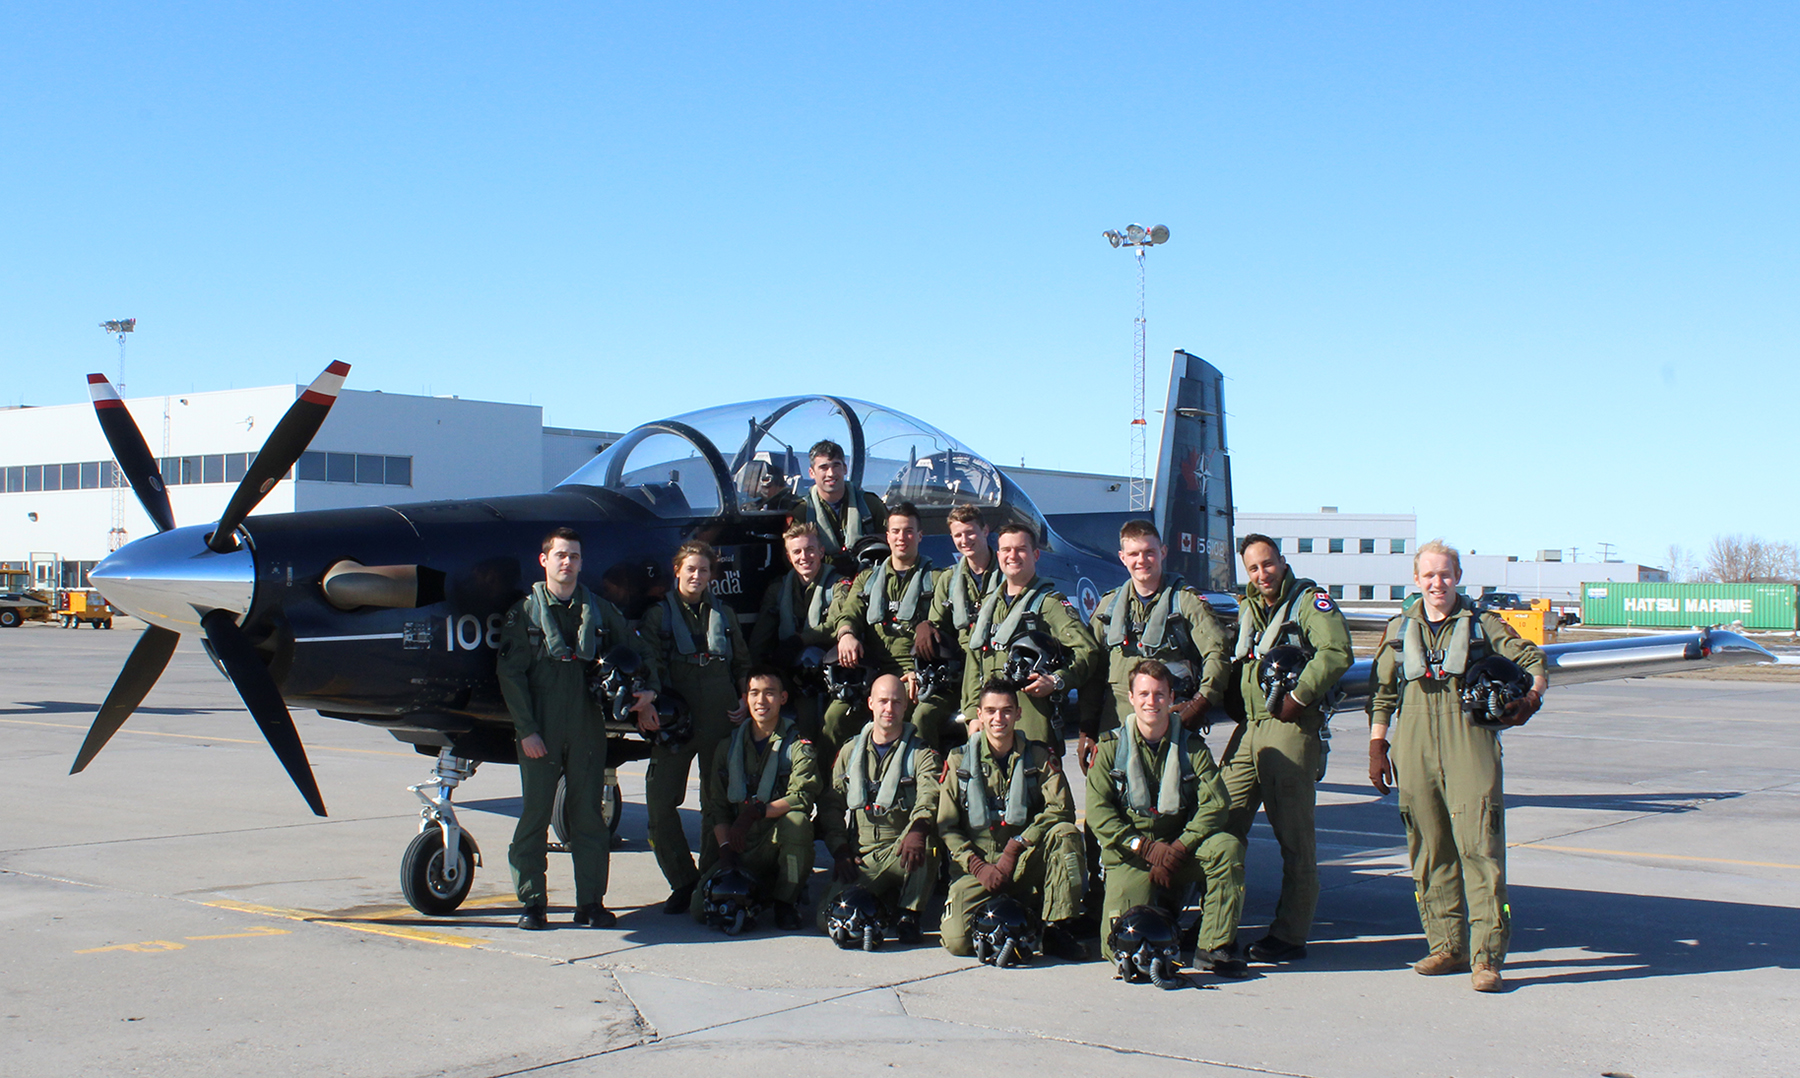 Fourteen young people wearing olive green flight suits and holding helmets gather on and in front of the port wing of a small dark blue aircraft.